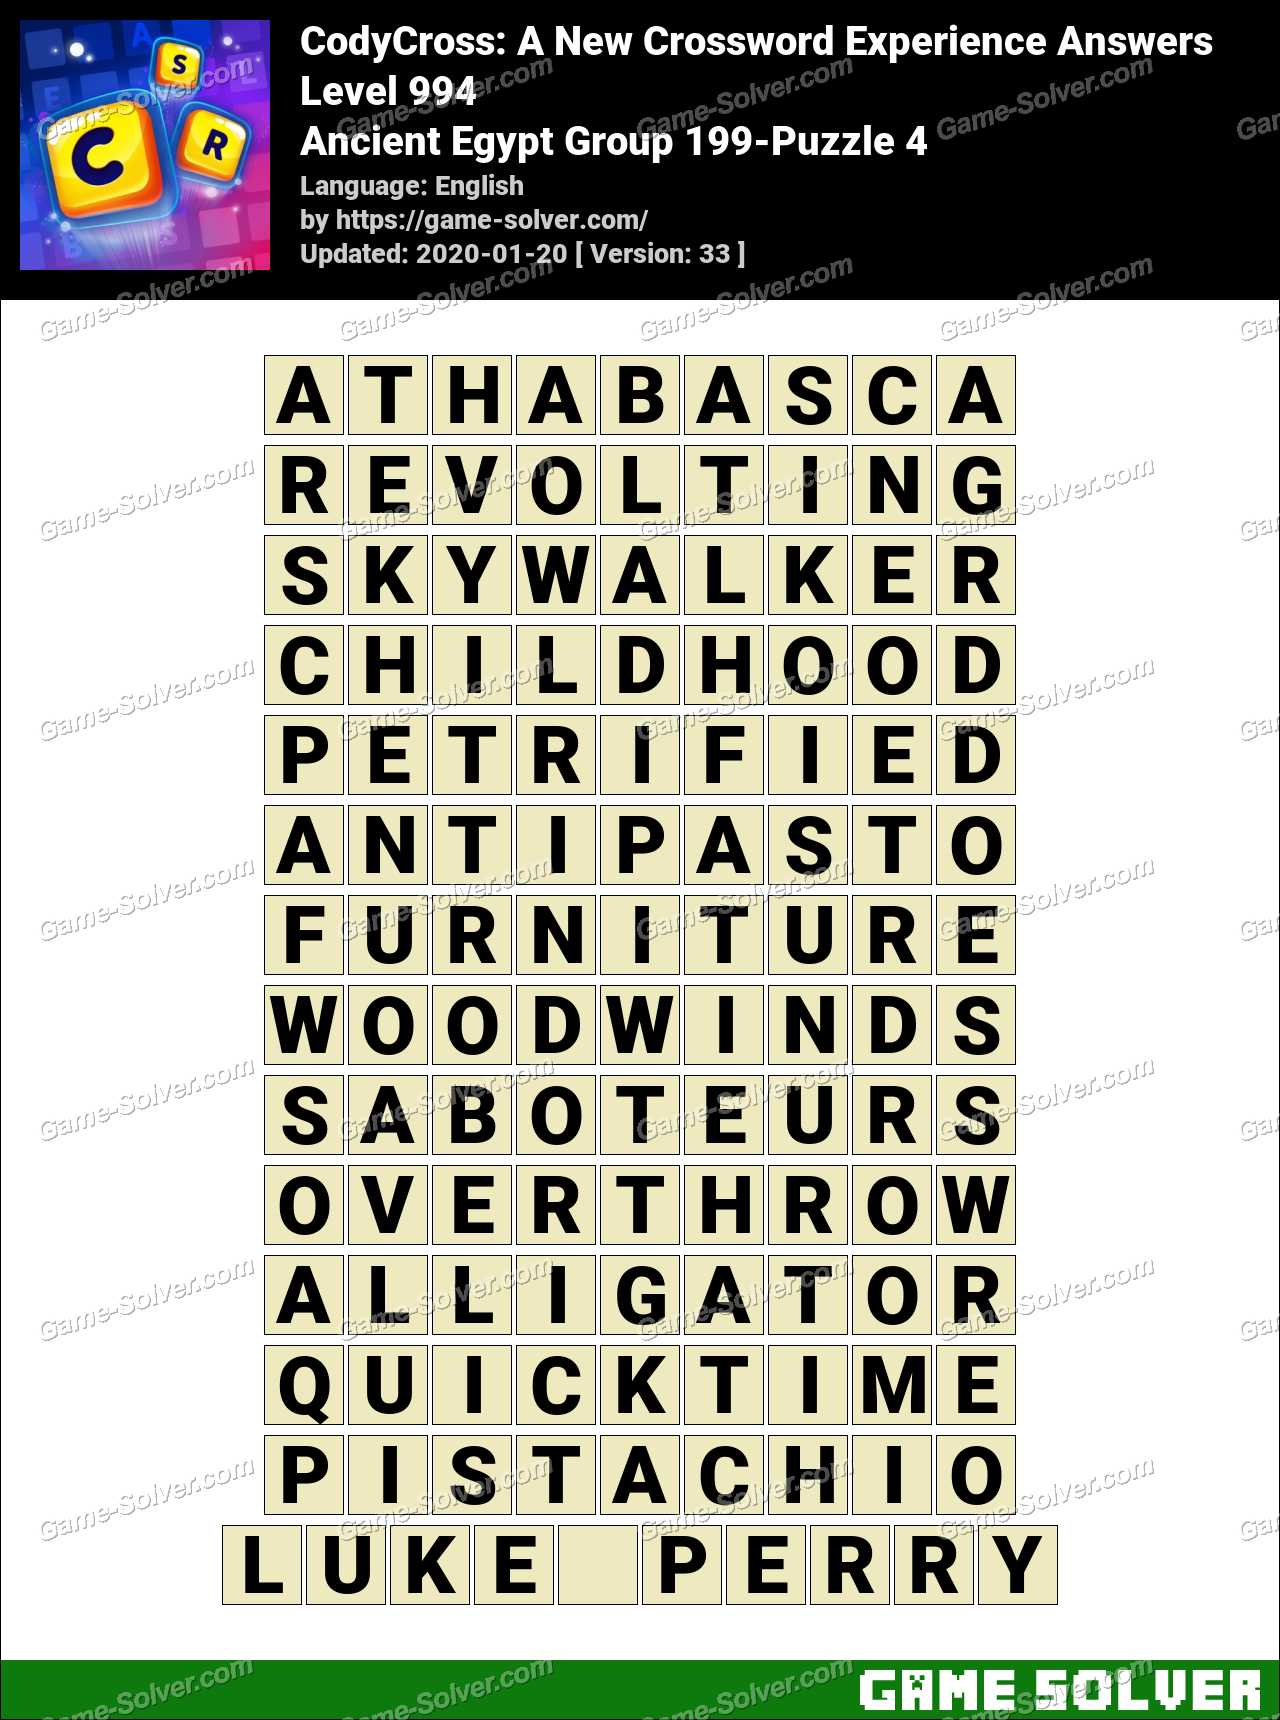 CodyCross Ancient Egypt Group 199-Puzzle 4 Answers